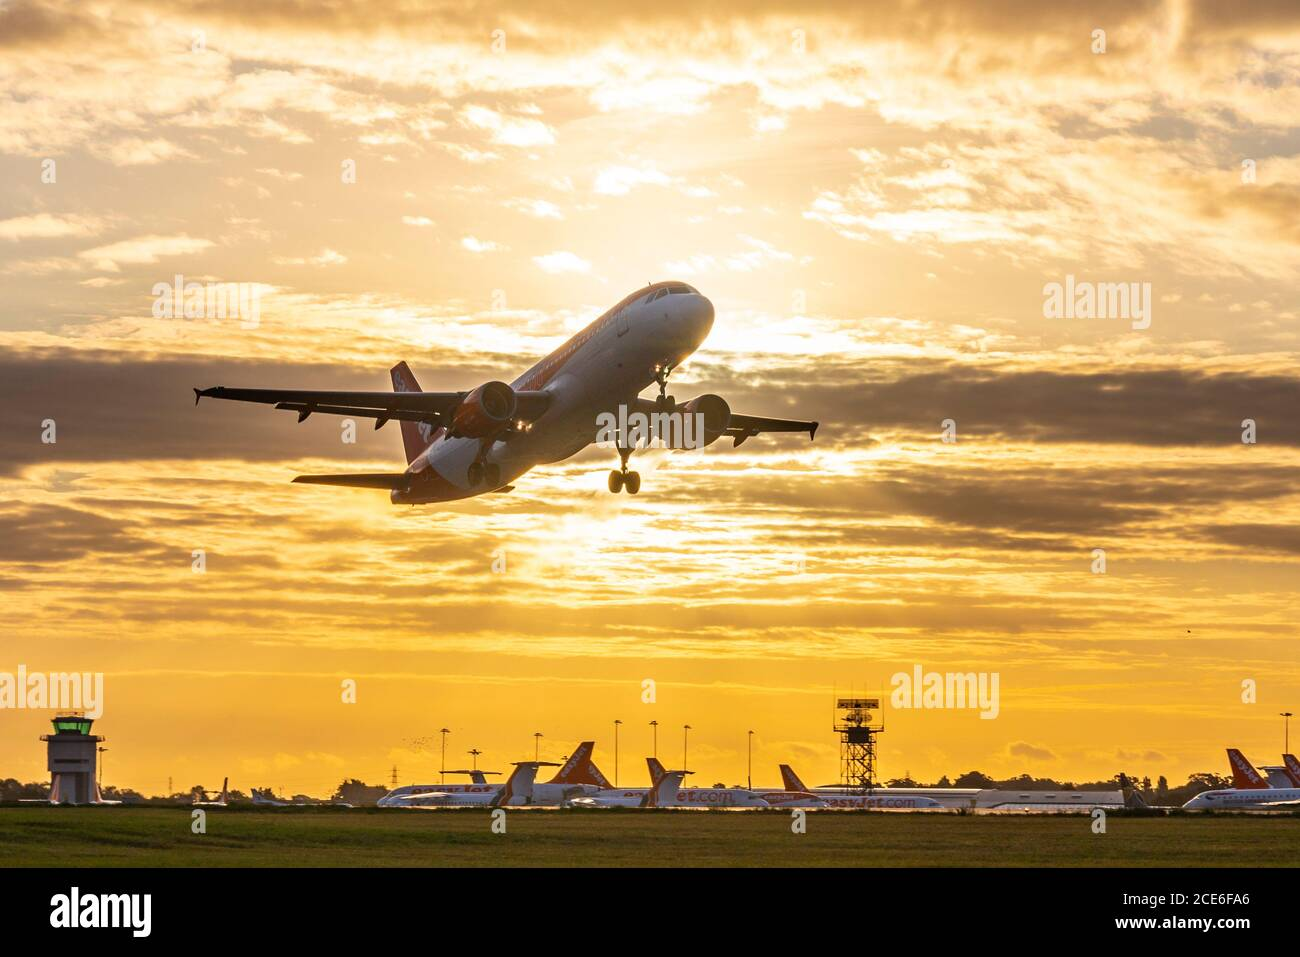 london-southend-airport-essex-uk-31th-aug-2020-as-the-sun-rises-over-the-airport-the-days-of-orange-easyjet-at-london-southend-airport-are-ending-as-the-airline-is-closing-its-base-the-first-easyjet-departure-at-0645-flight-u27421-to-palma-de-mallorca-with-the-airline-due-to-fly-its-final-services-later-in-the-day-it-marks-the-end-of-easyjet-at-southend-with-the-loss-of-many-jobs-a-number-of-easyjet-planes-remain-stored-due-to-the-covid-19-pandemic-2CE6FA6.jpg